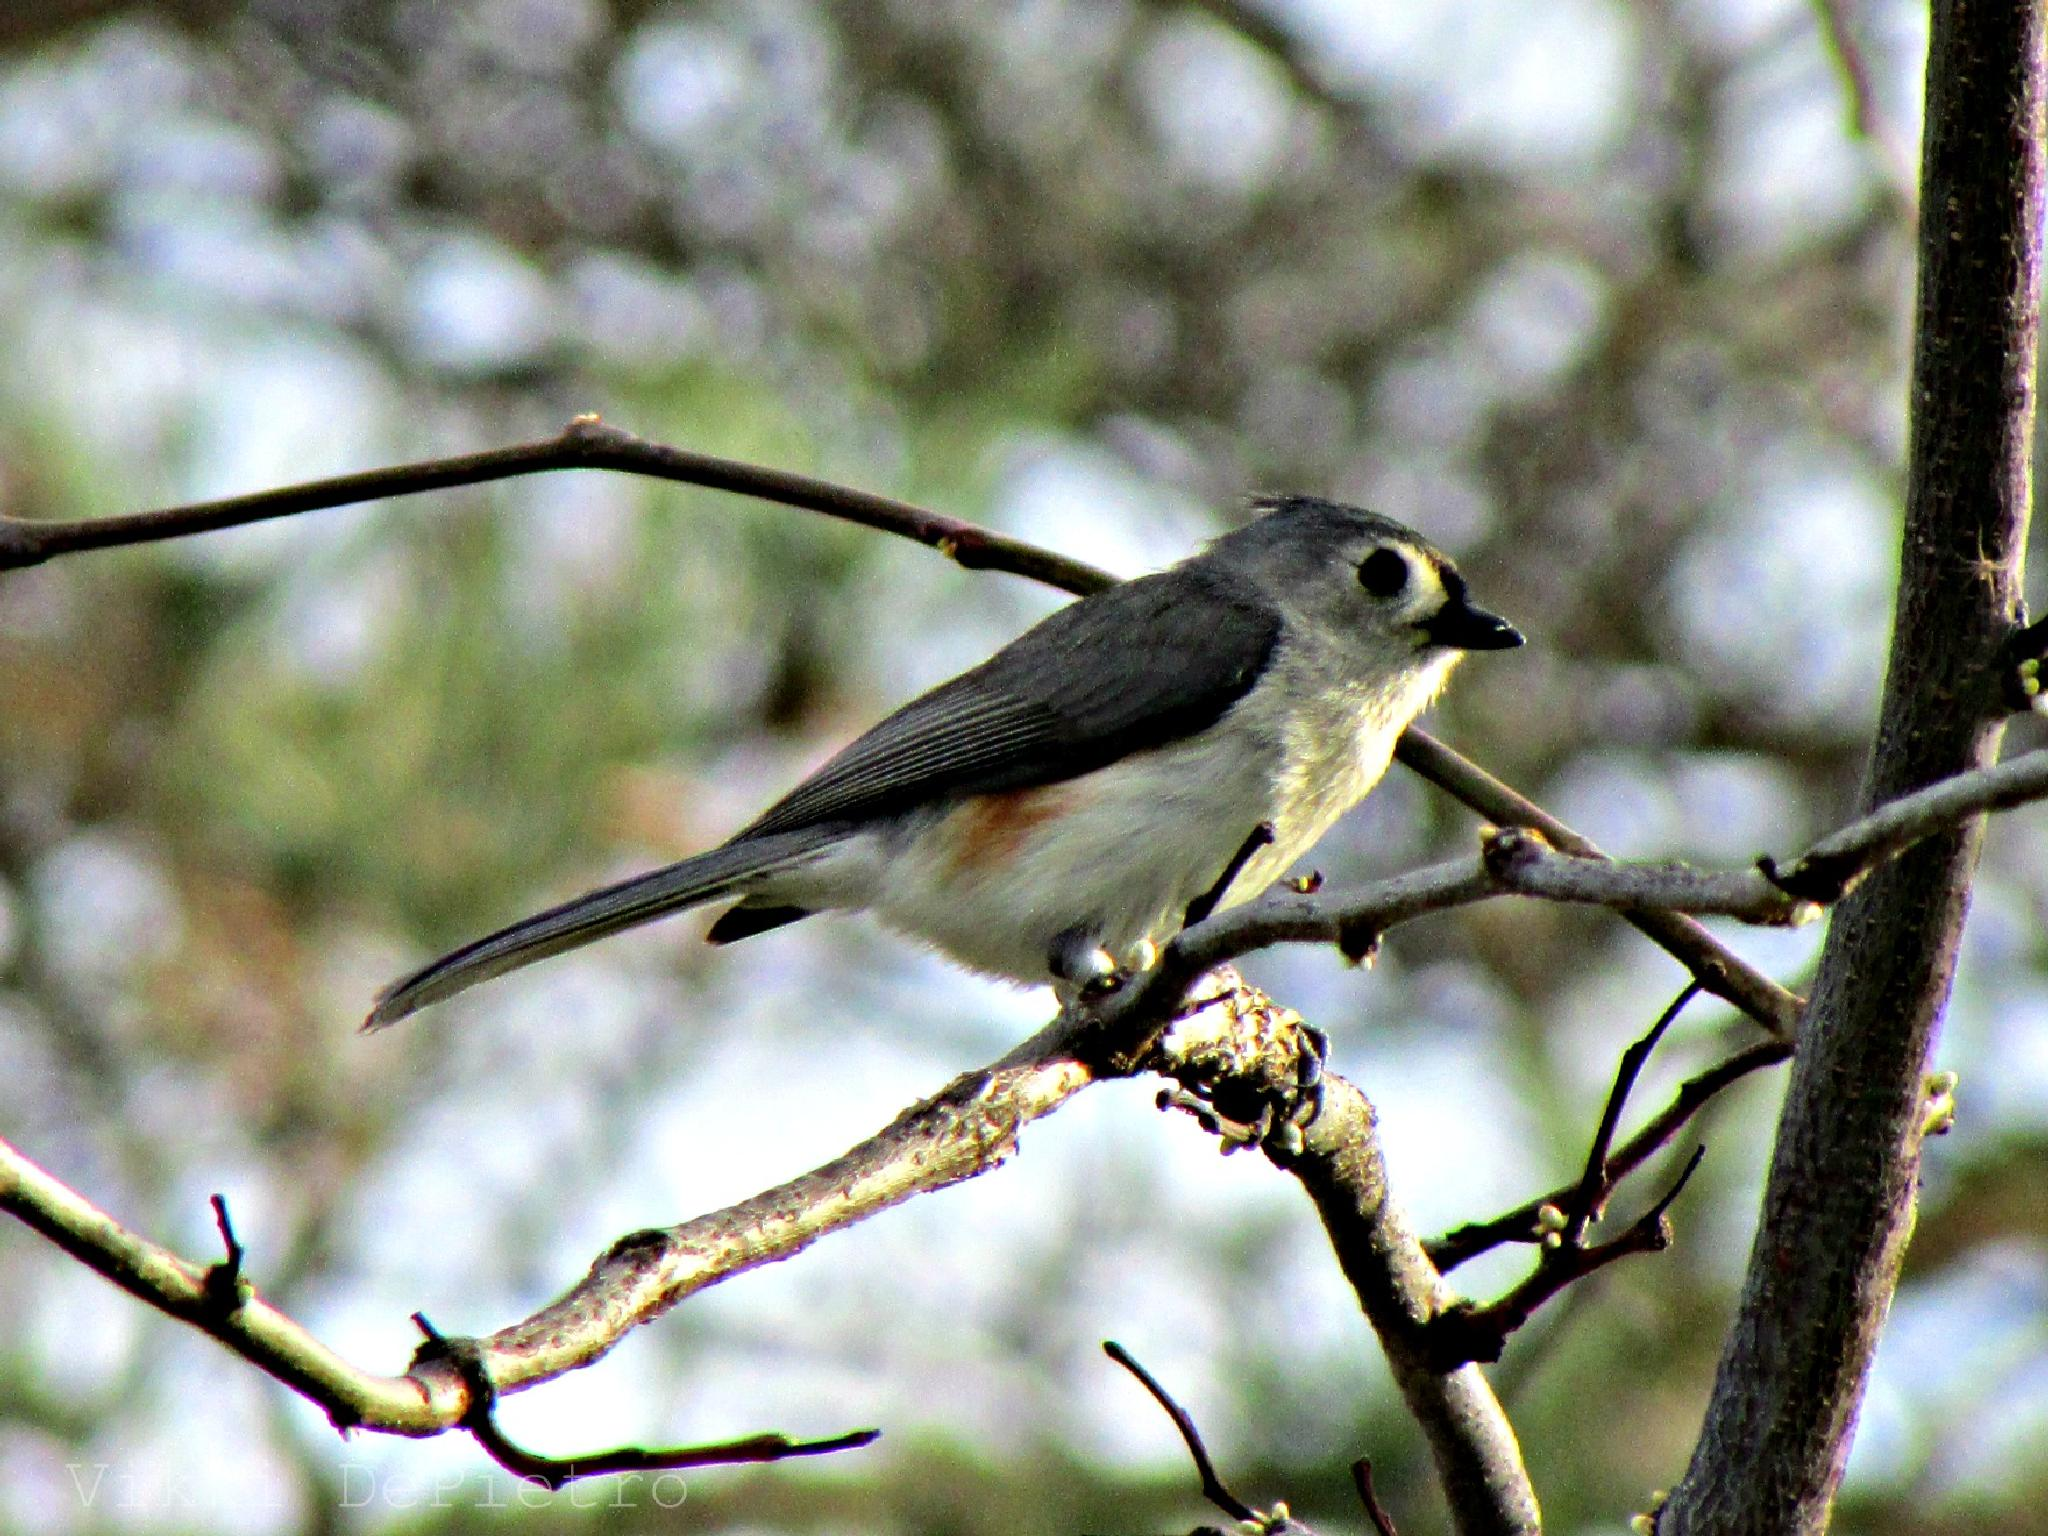 Tufted Titmouse by Vikki Schifano